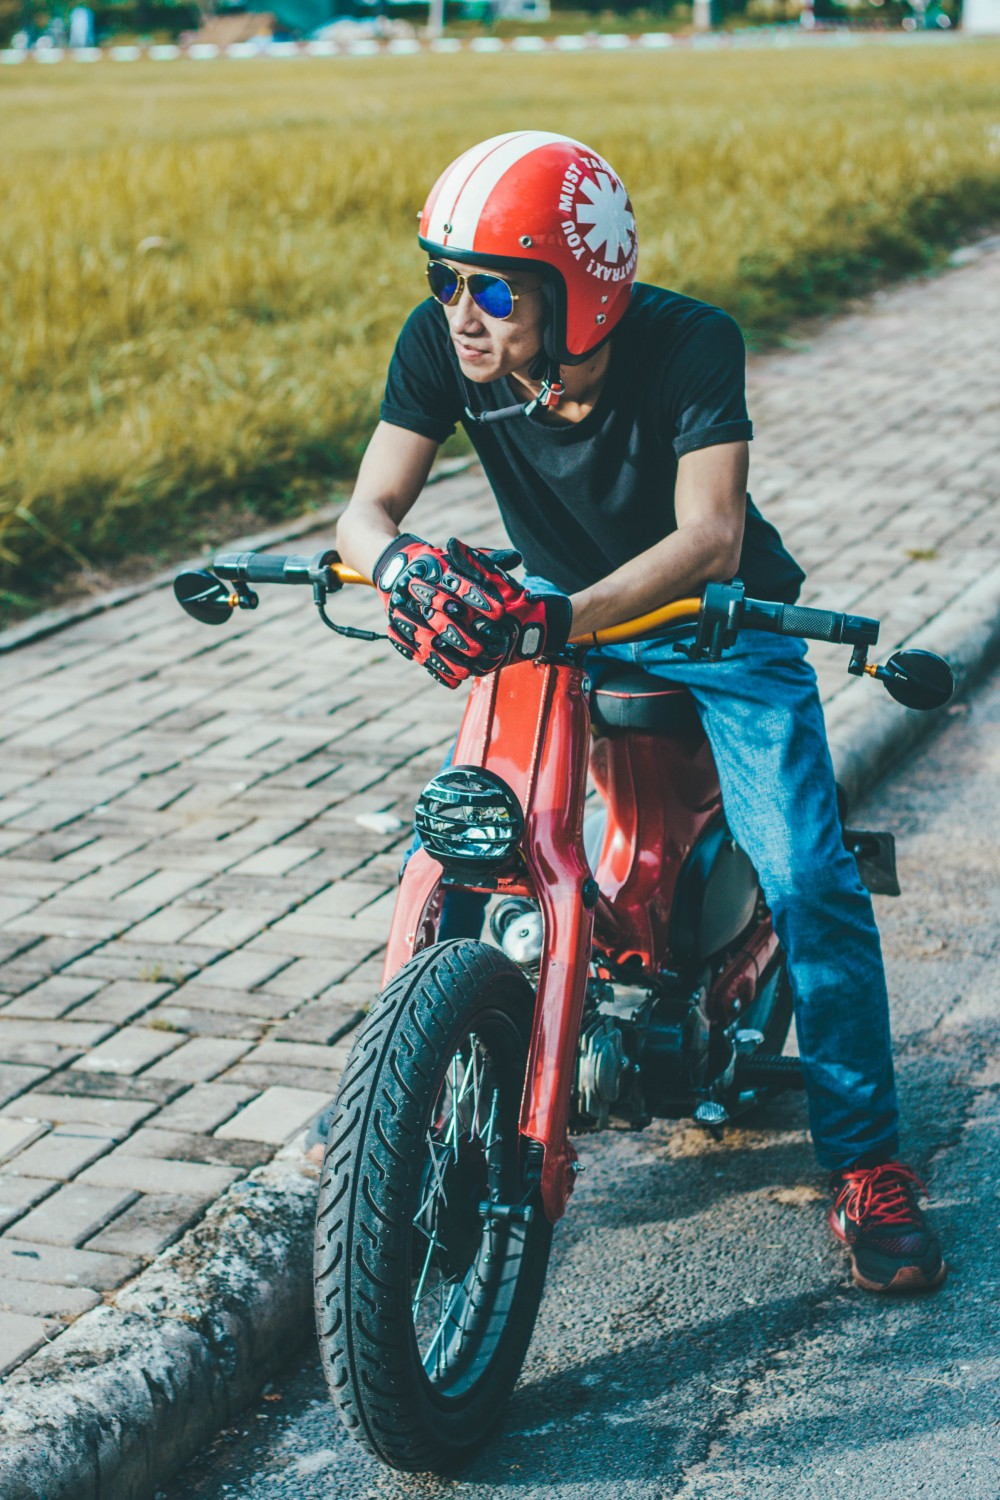 Do nhu cau len Tracker len can ban Street Cub - 3